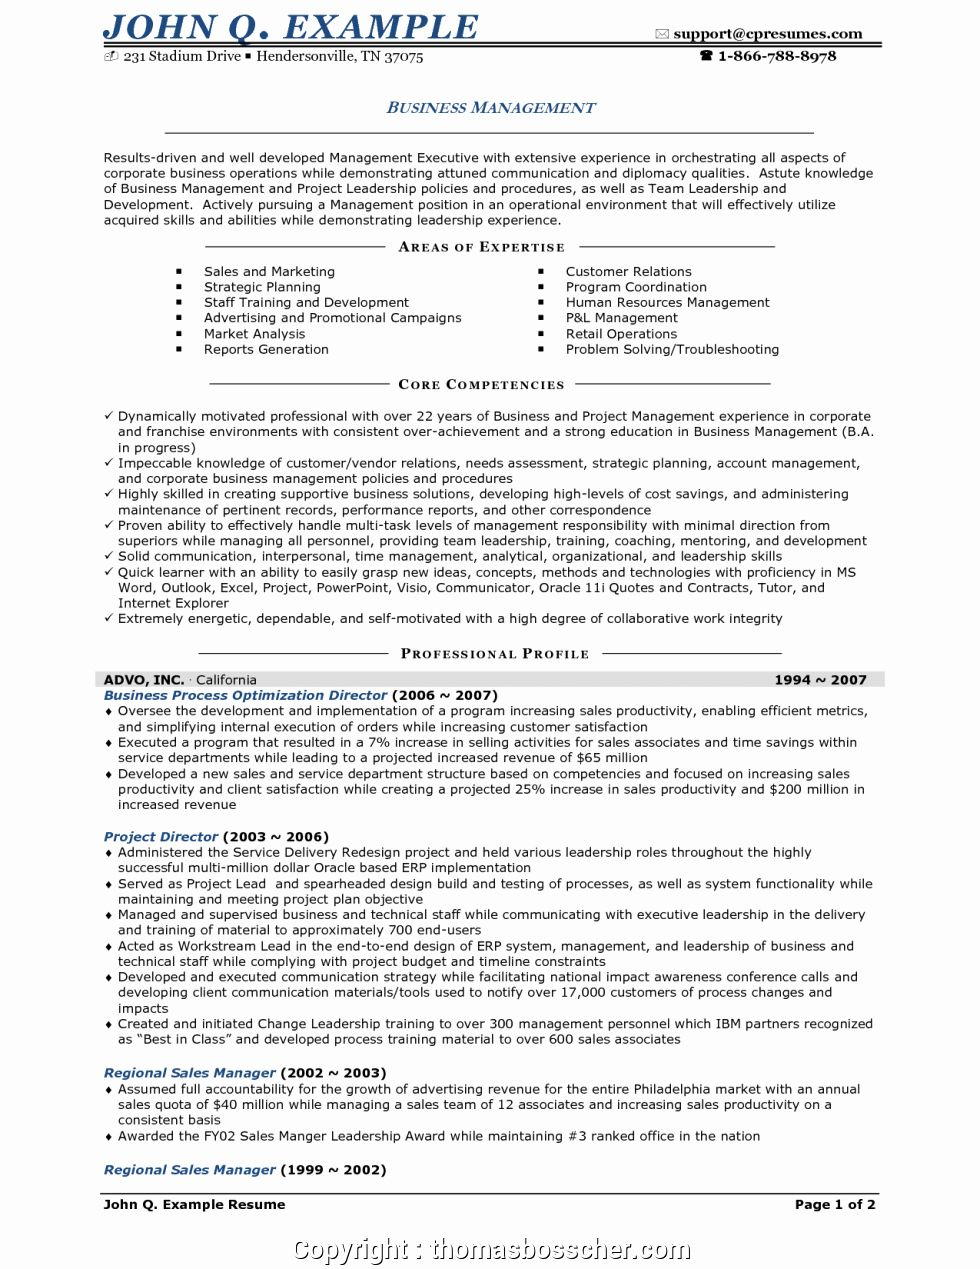 23 small business owner resume examples in 2020 business